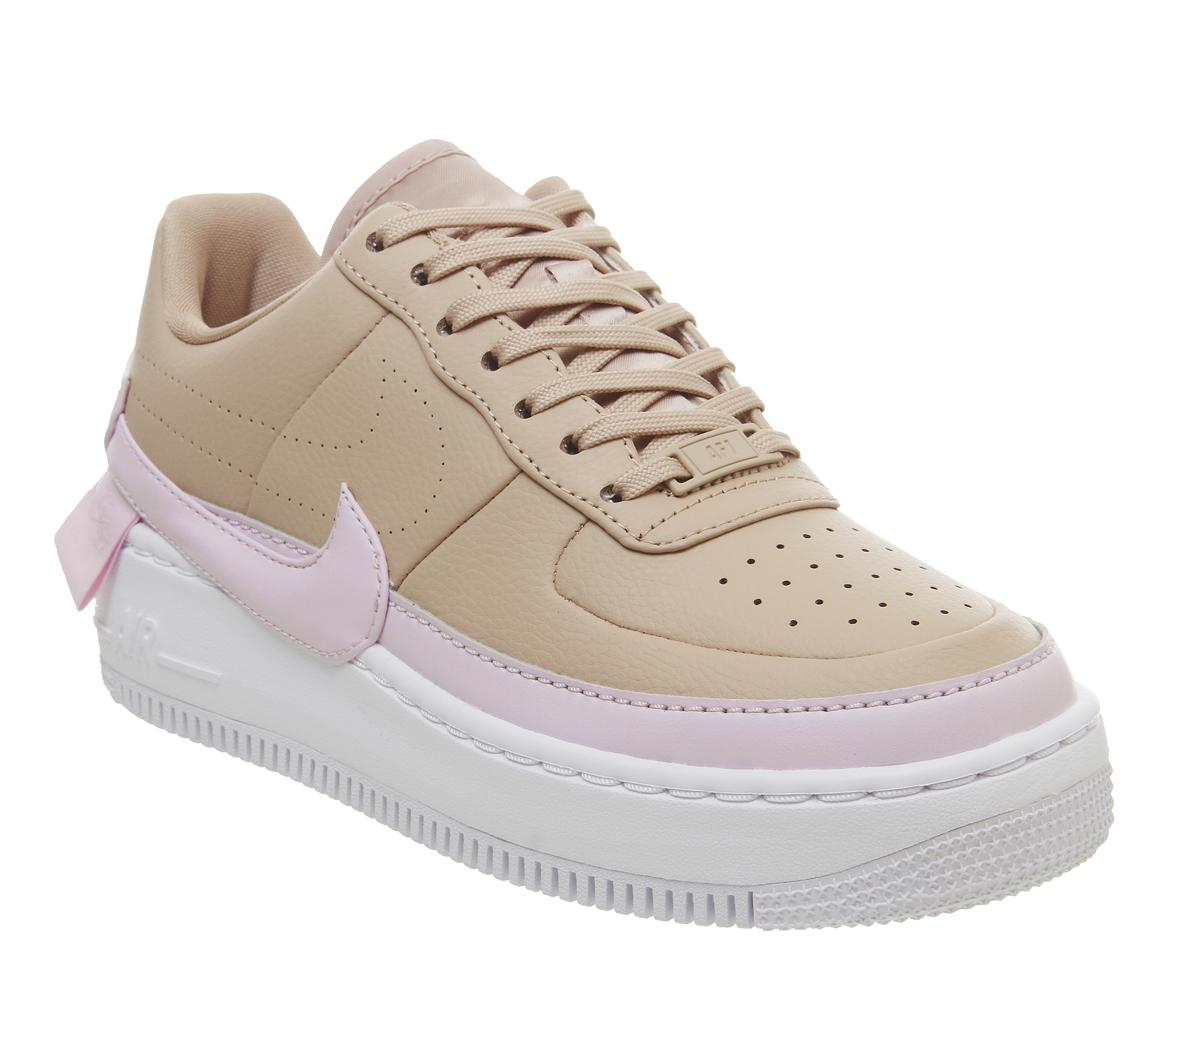 Details about Nike Air Force 1 Jester XX Bio BeigePink Force